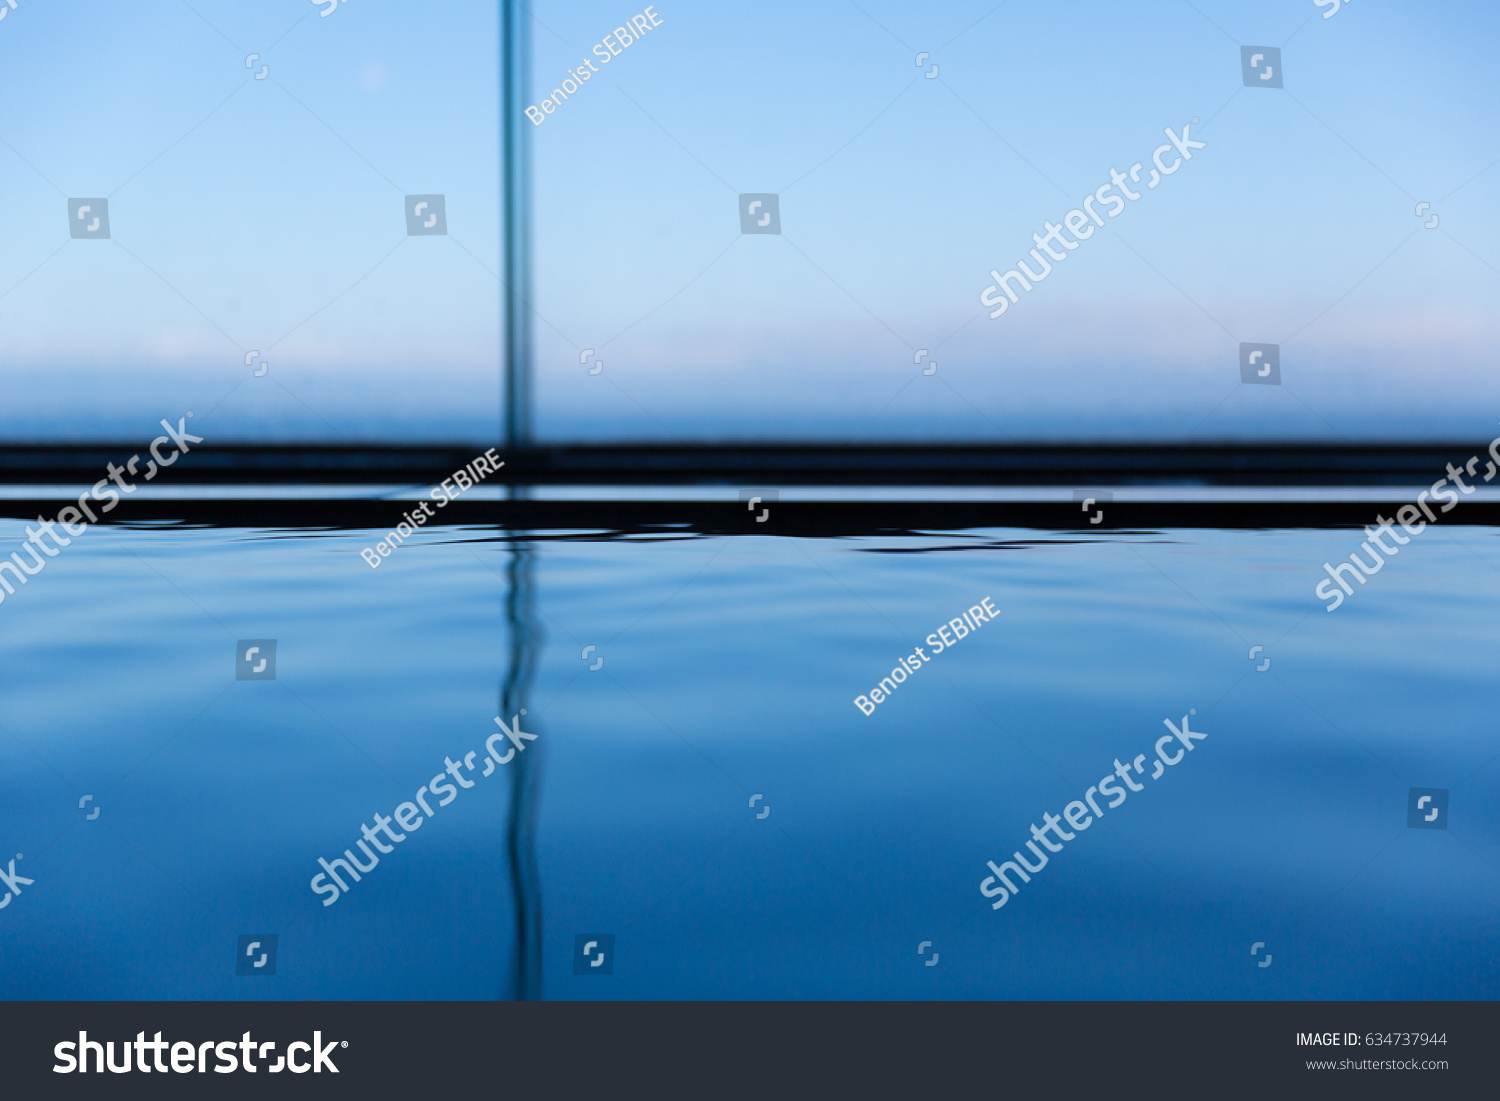 Japanese Onsen Hot Spring Bath Stock Photo (Download Now) 634737944 ...